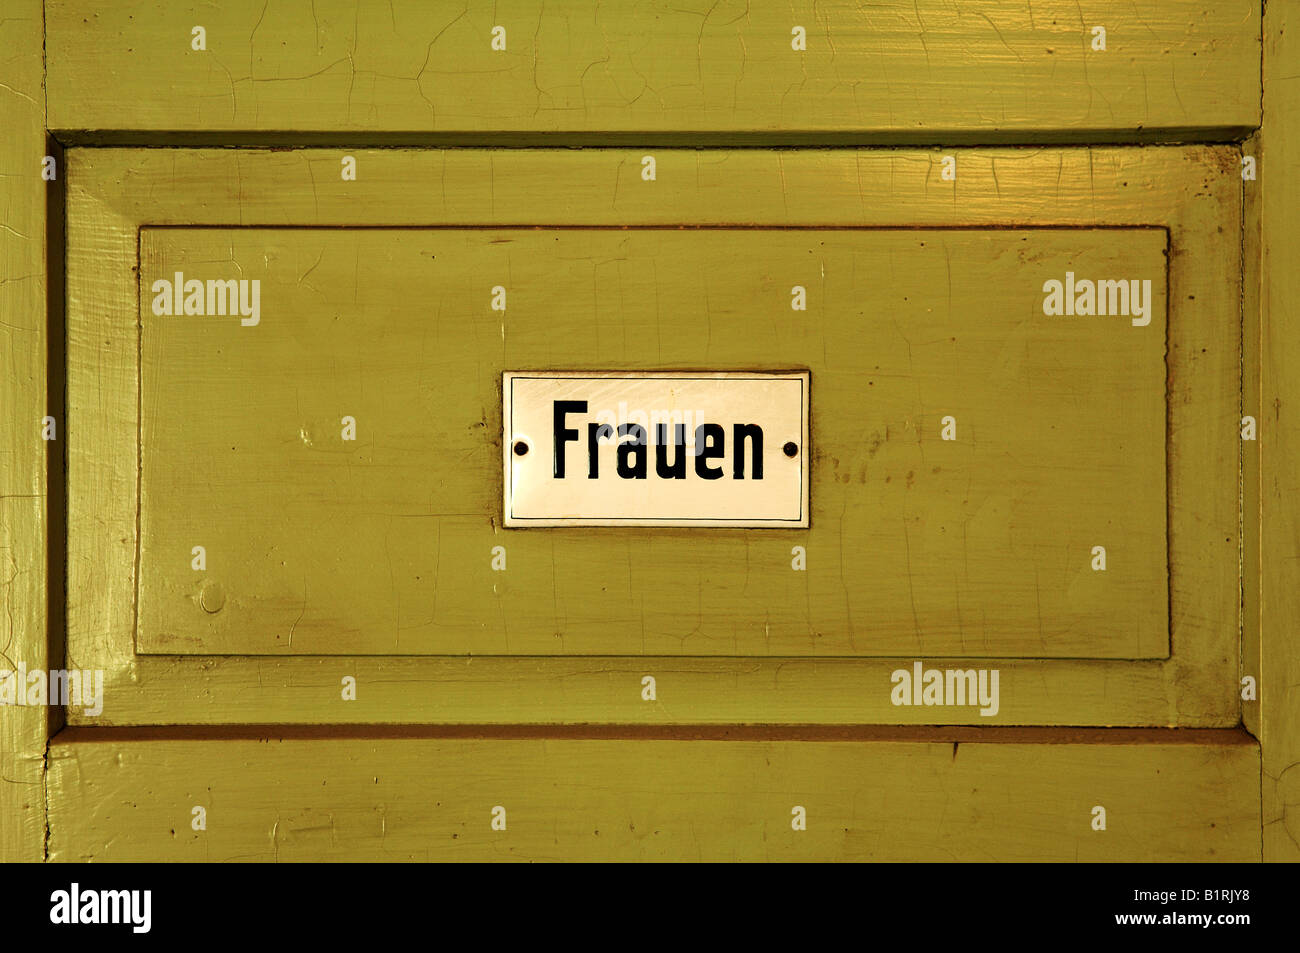 Toilet door sign, Frauen, women, from 1950, Industry Museum, Lauf an der Pegnitz, Middle Franconia, Bavaria, Germany, - Stock Image